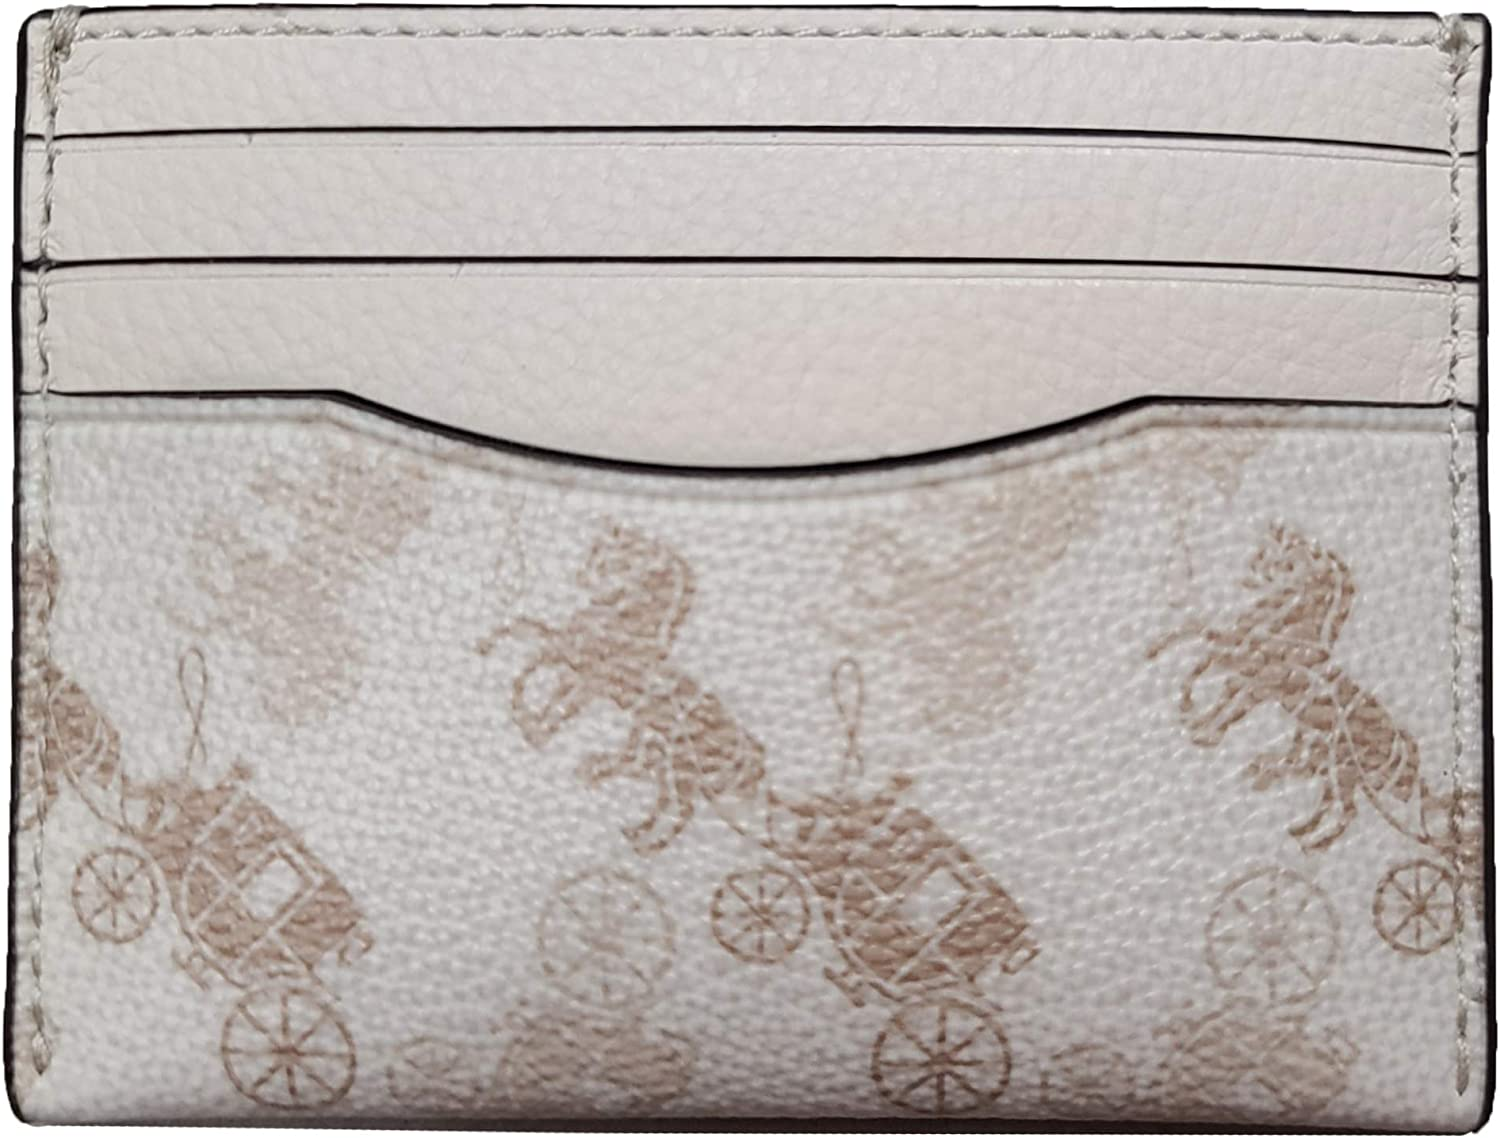 Coach Slim Card Case With And Print Ranking Save money TOP8 Horse Ivory Carriage